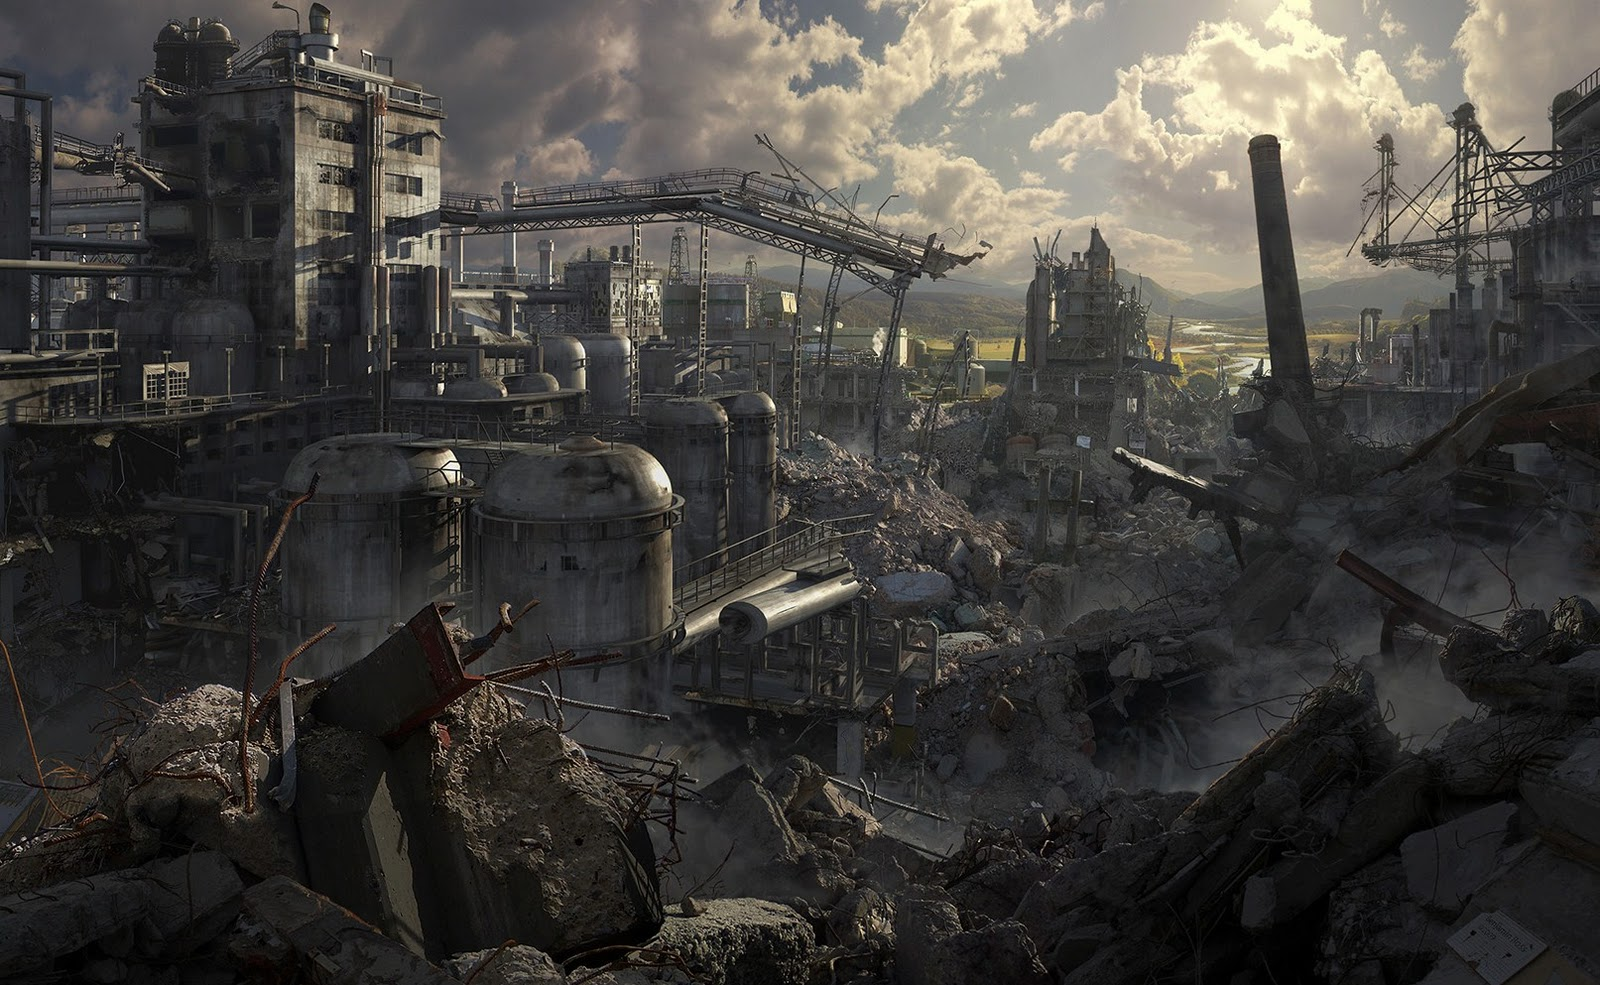 apocalyptic city wallpaper - photo #11